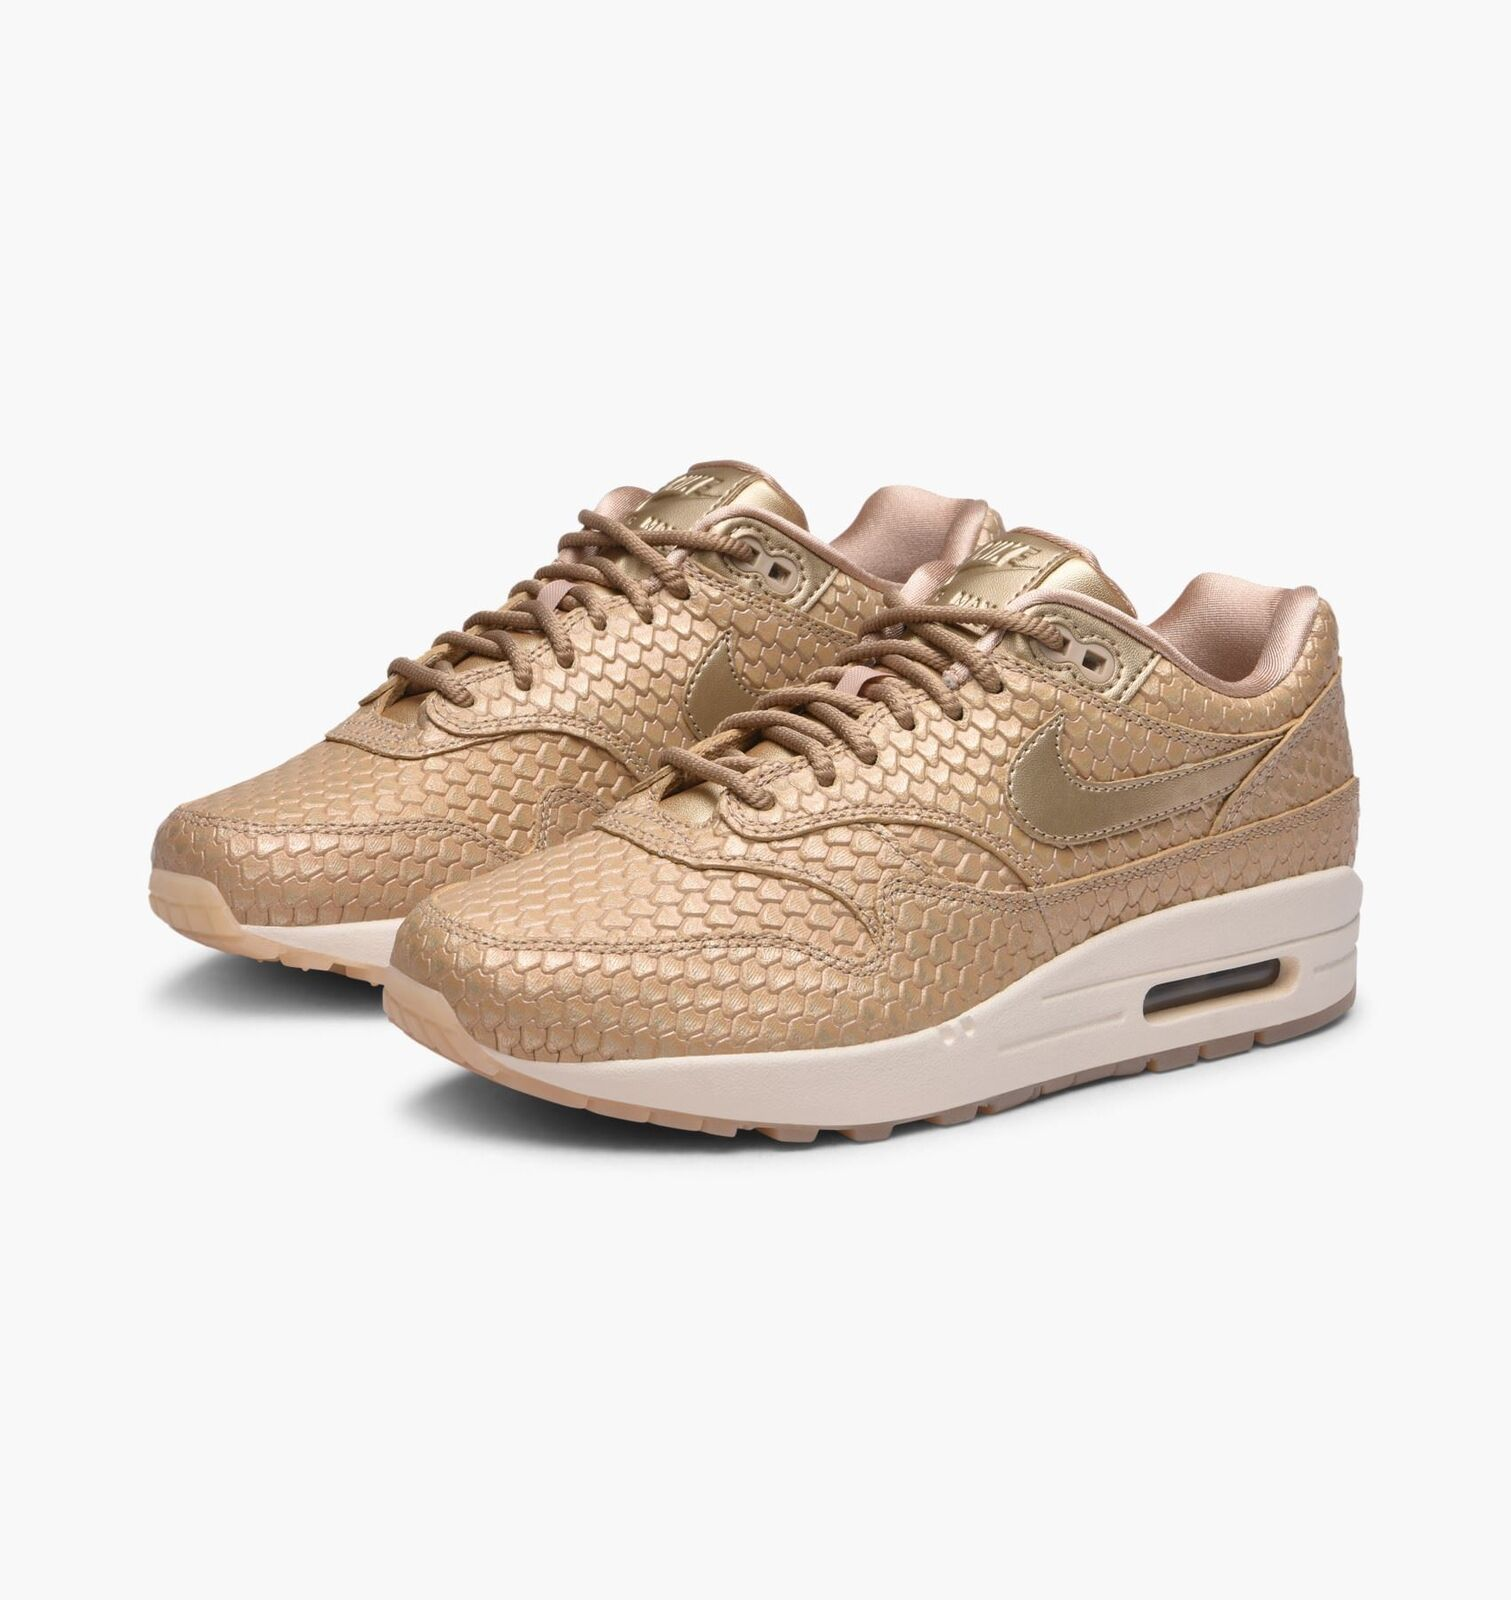 Nike damen Air Max 1 PRM Blaur and Light braun Trainers 454746 900